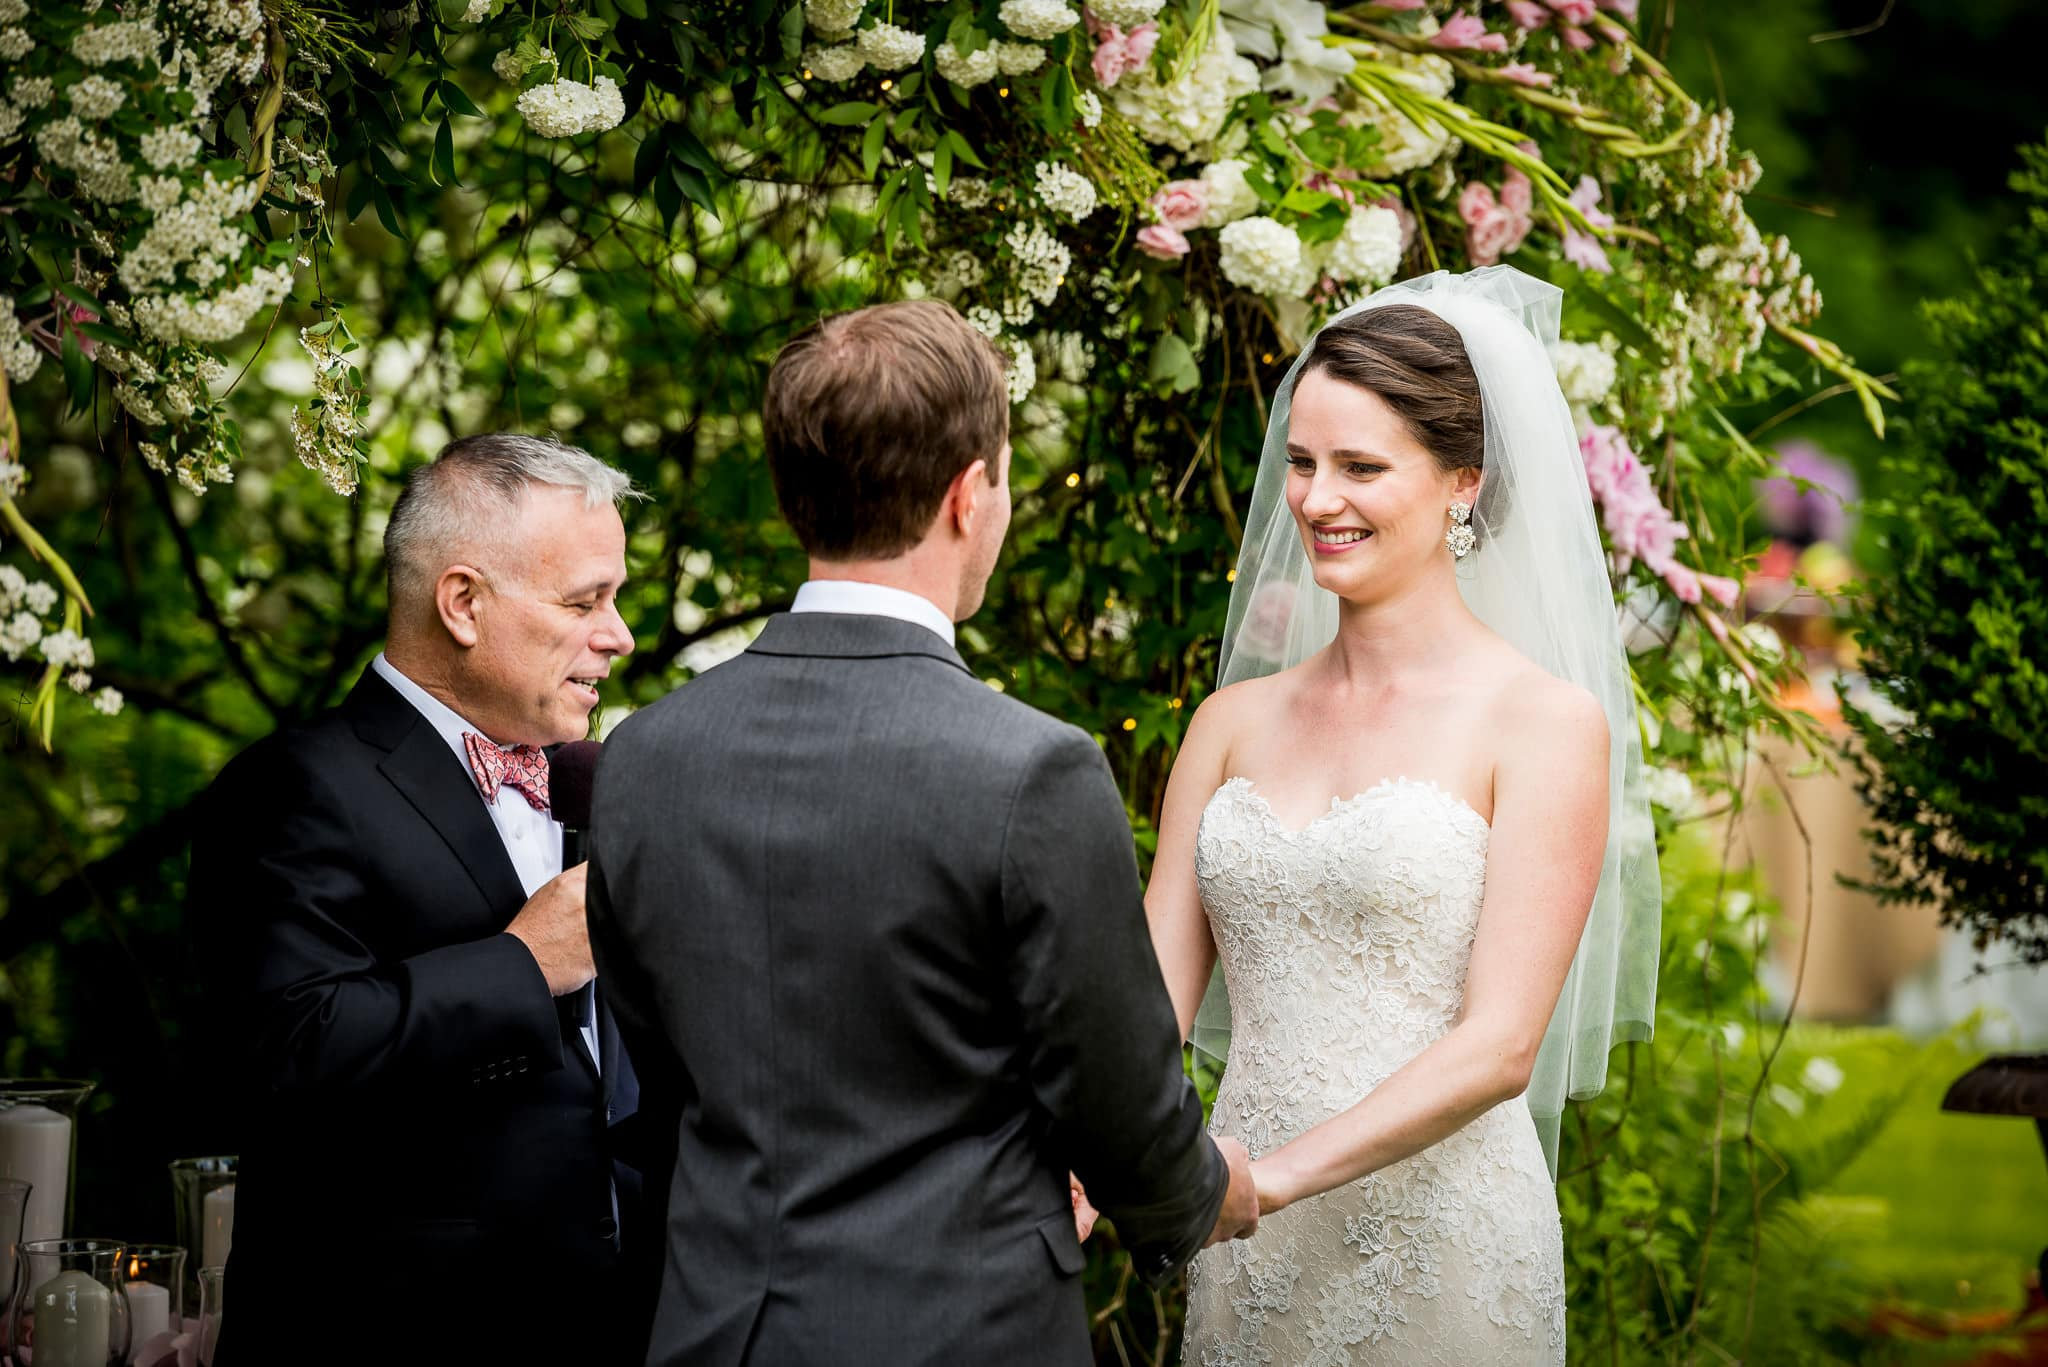 Camrose Hill Flower Farm flower alter with Bride and Groom smiling at each other